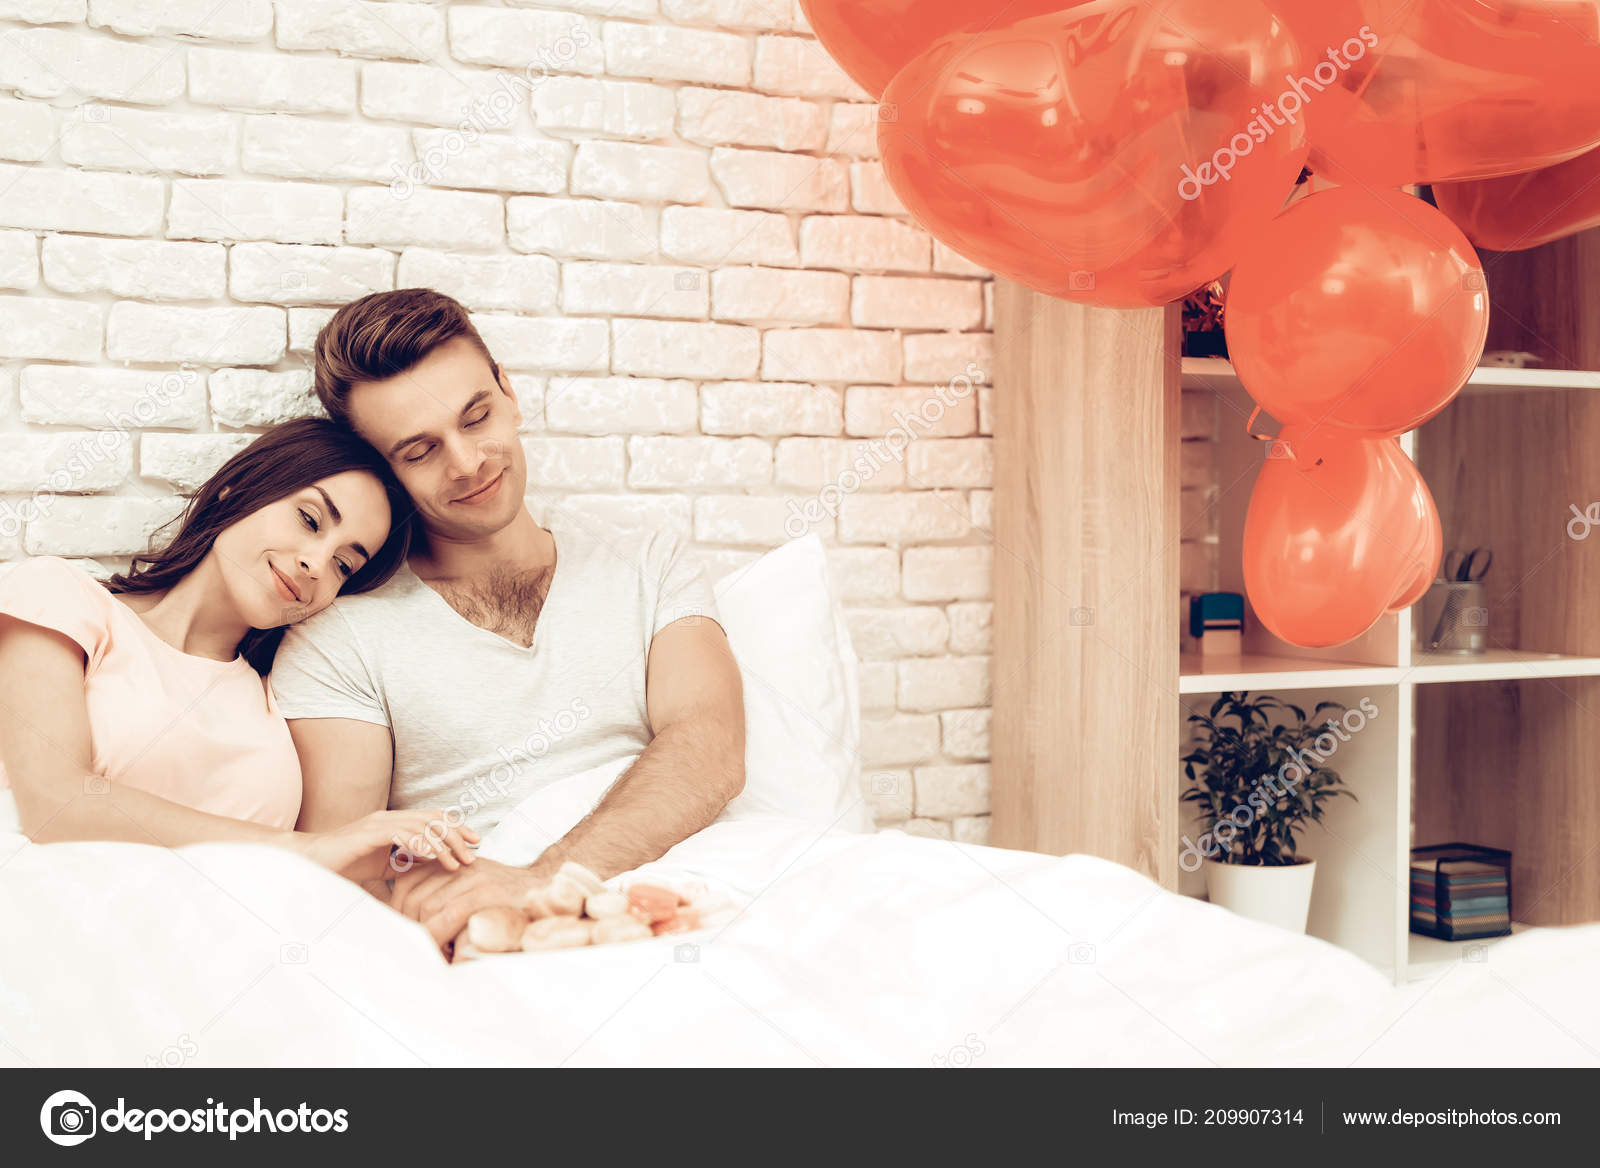 Happy Couple Lying Bed Valentine Day Love Each Other Sweetheart Stock Photo C Vadimphoto1 Gmail Com 209907314